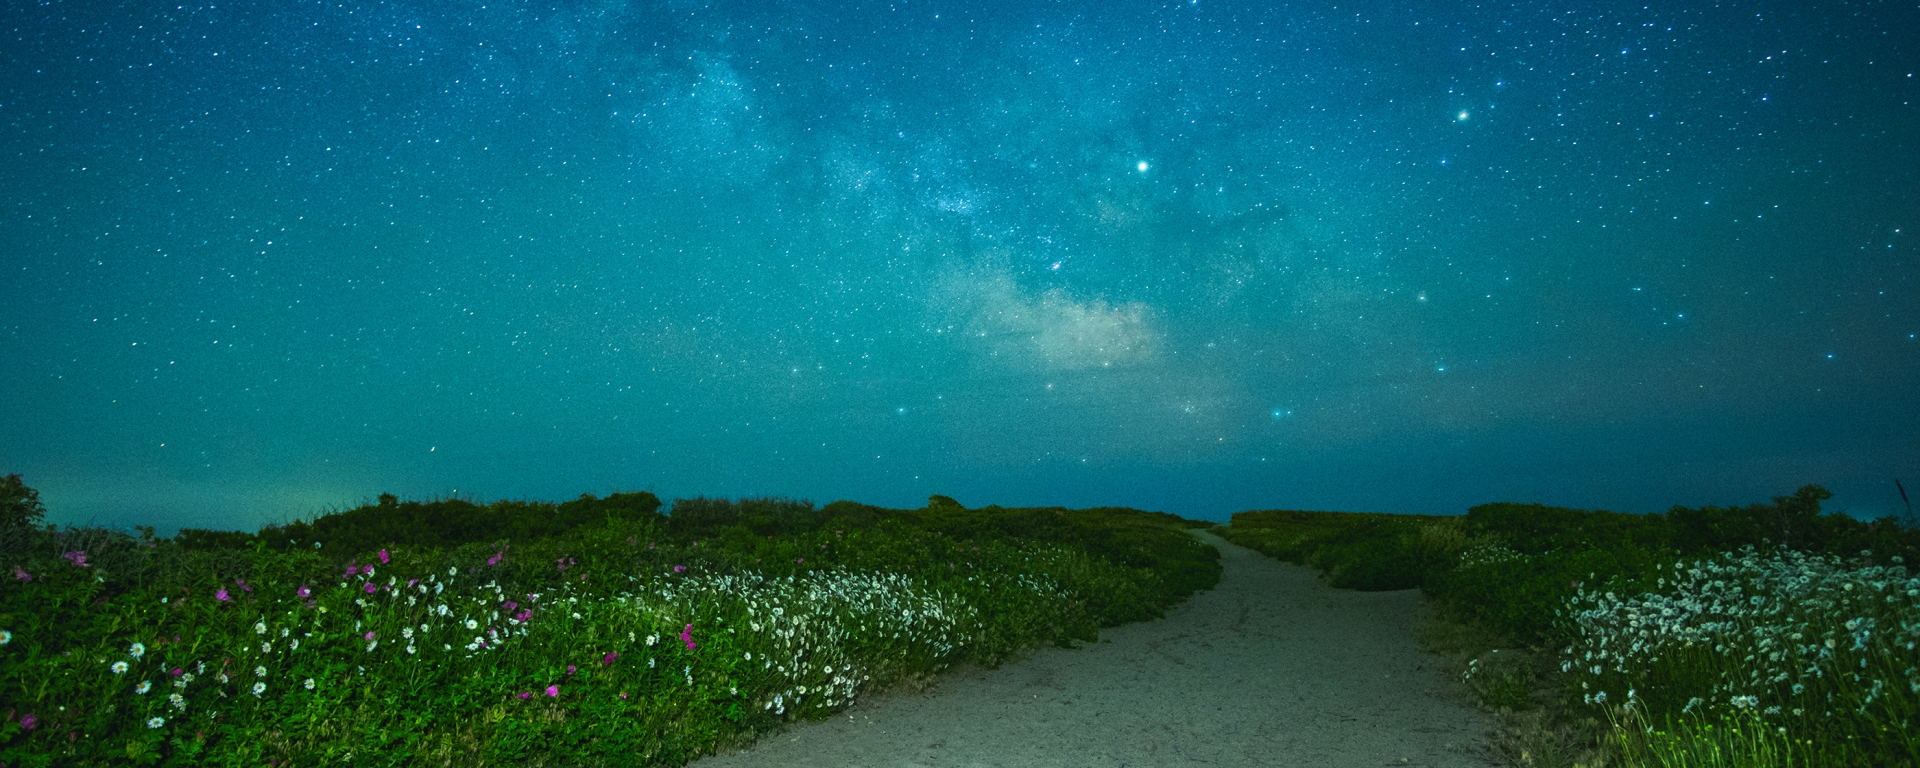 The Milkyway Galaxy above Gooseberry Island in Westport, Massachusetts.